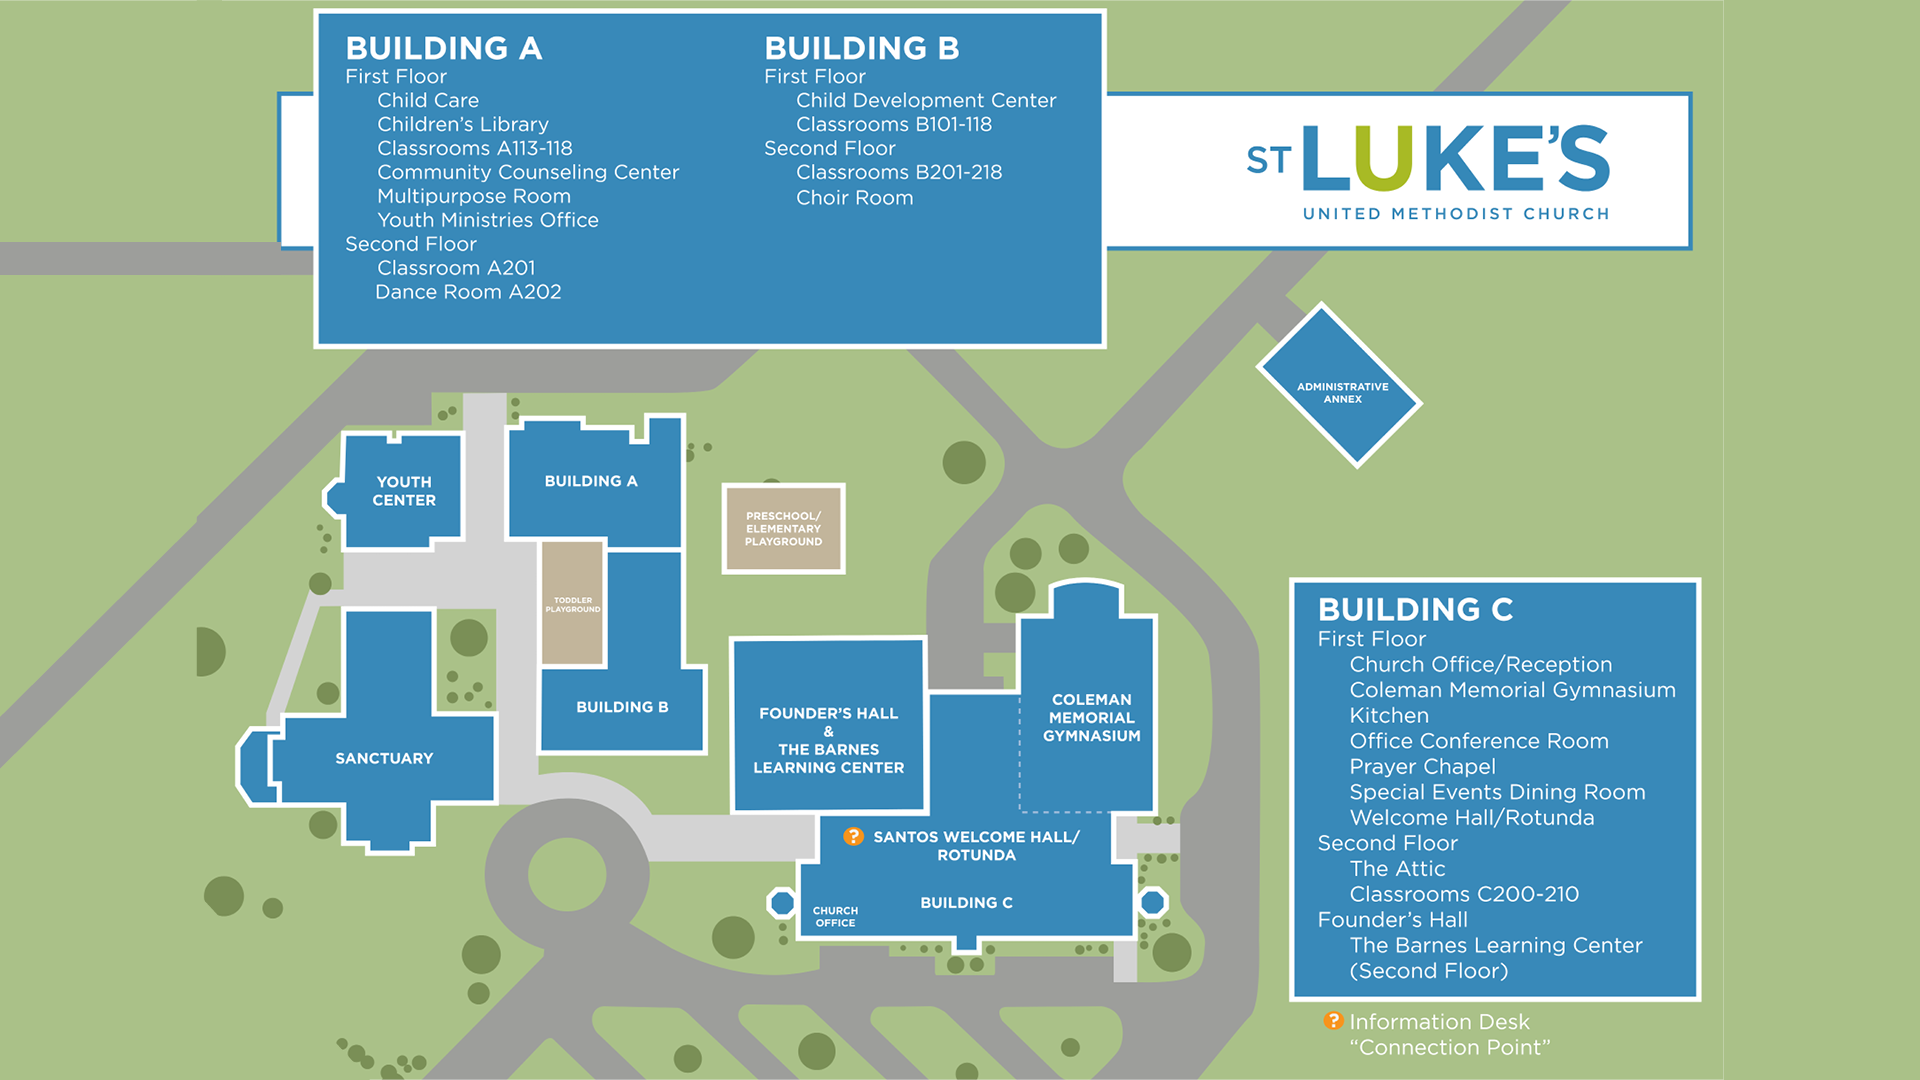 Campus Map : St. Luke's on hope for tomorrow, energy for tomorrow, evangelism for tomorrow, race for tomorrow, animals for tomorrow, mission for tomorrow, church for tomorrow, technology for tomorrow, peace for tomorrow, women for tomorrow, food for tomorrow, freedom for tomorrow, tourism for tomorrow, faith for tomorrow, education for tomorrow, prayer for tomorrow, work for tomorrow,